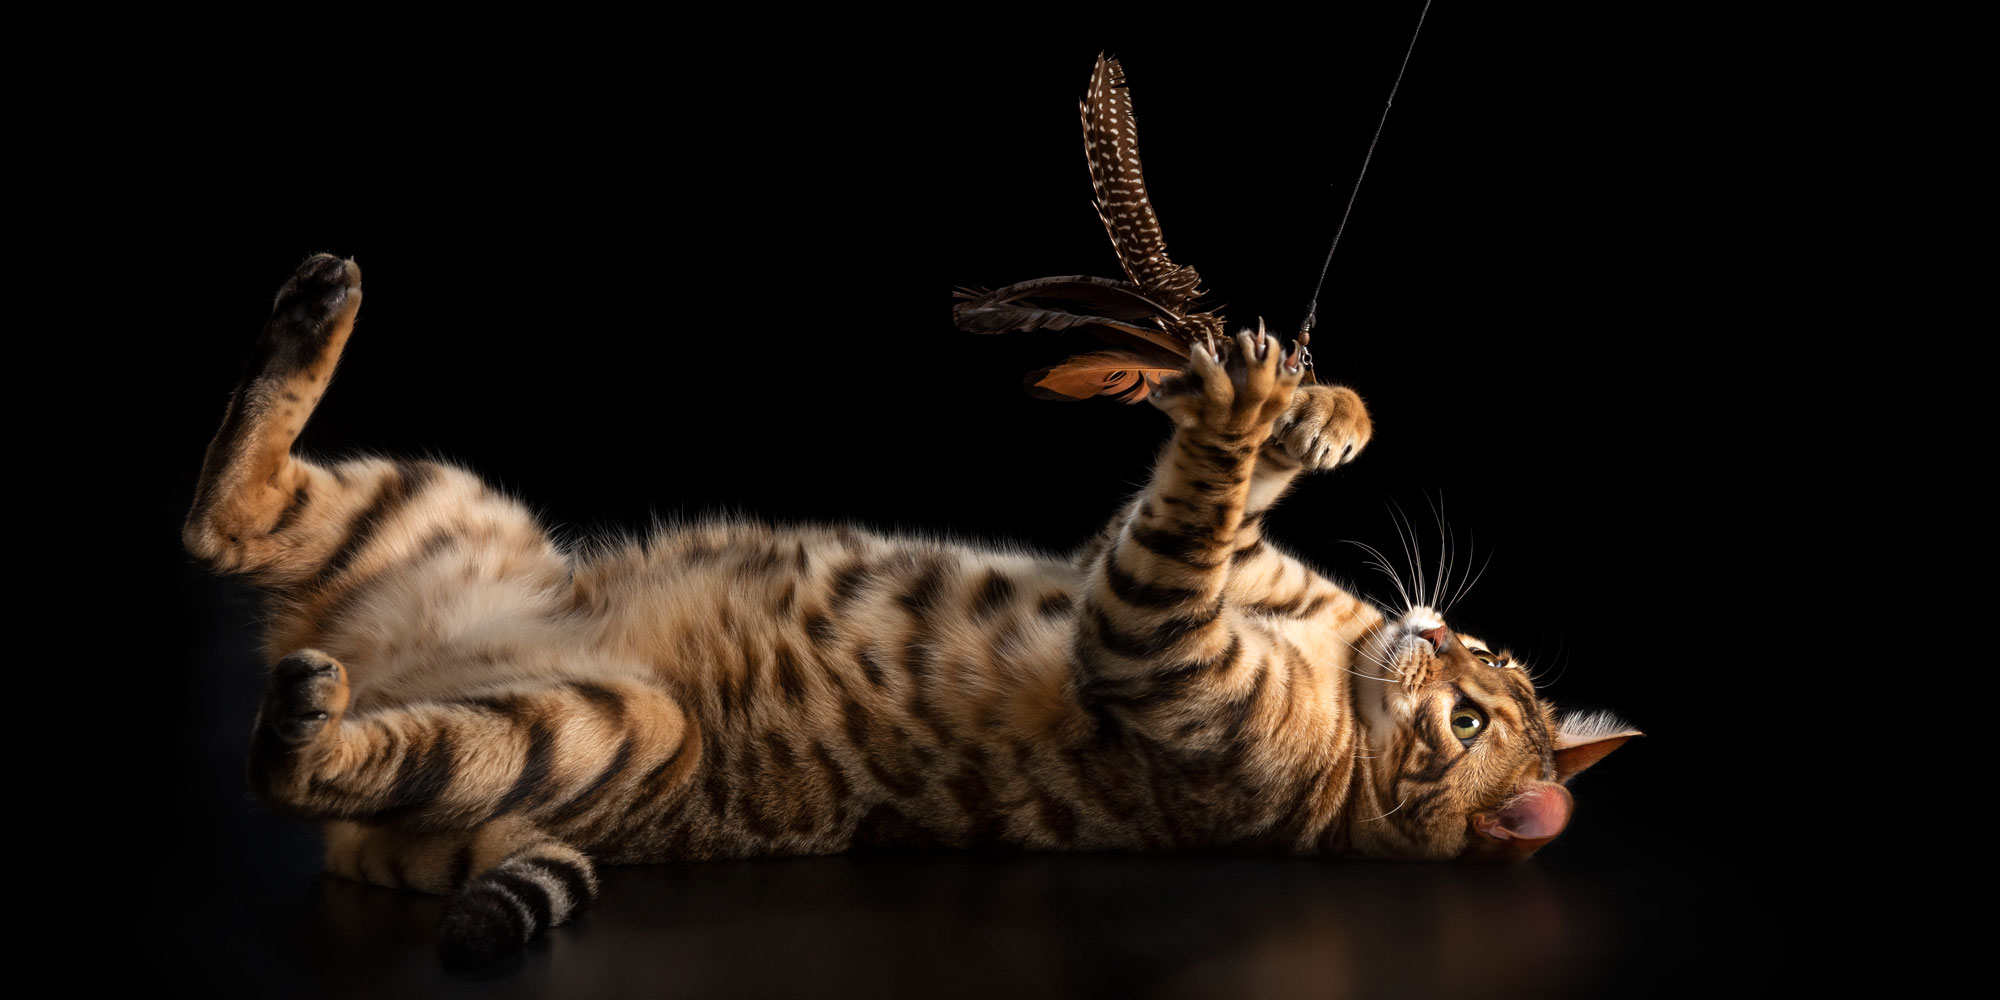 bengal male cat playing with fish toy lying on back